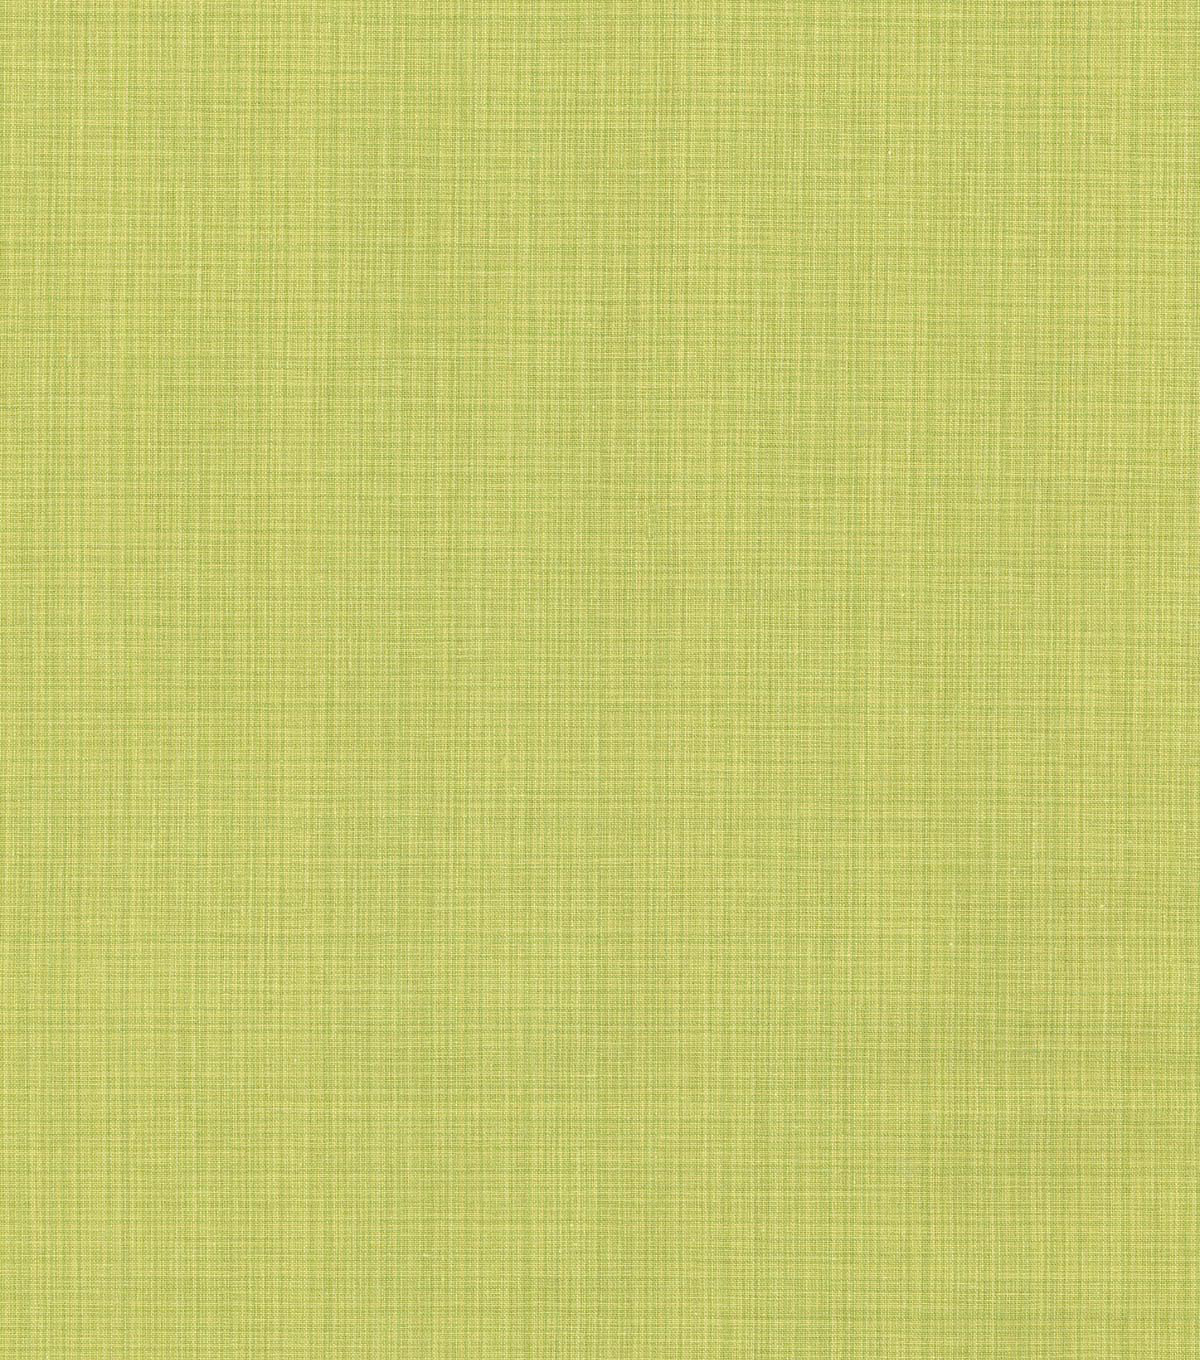 Home Decor 8\u0022x8\u0022 Swatch Fabric-Williamsburg Stratford Strie Spring